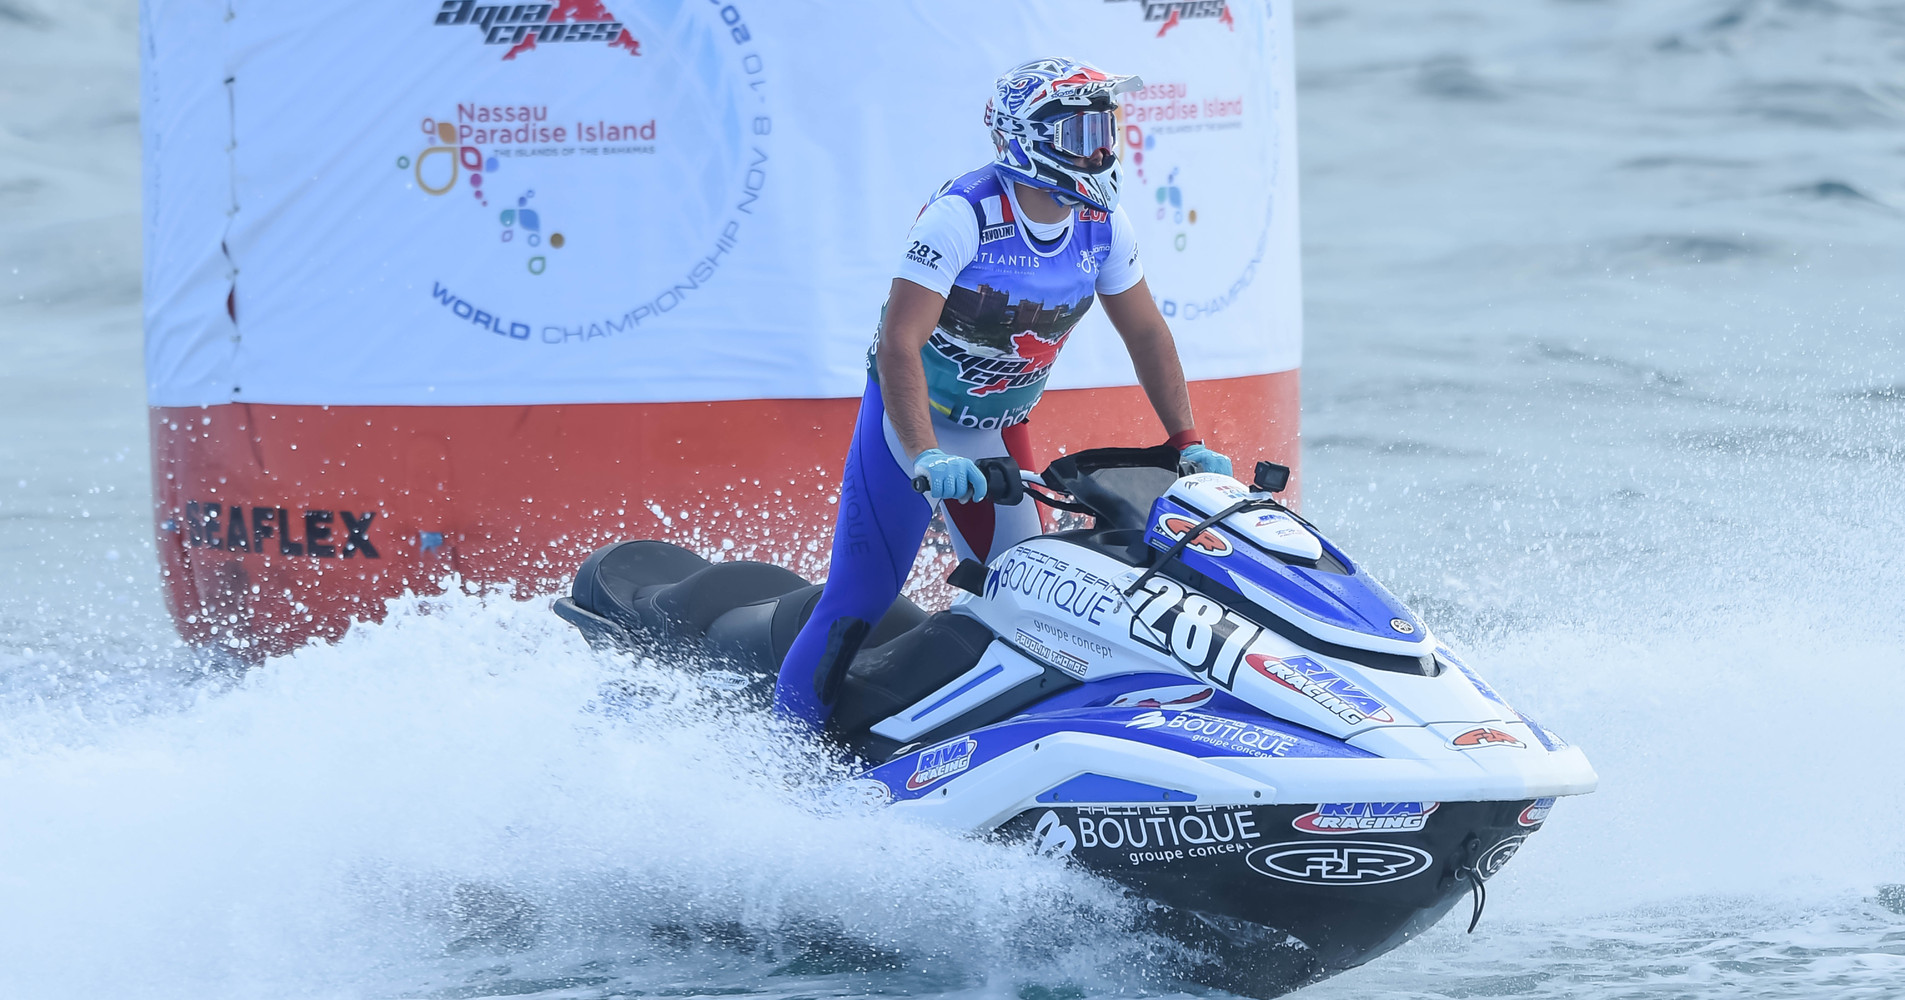 2019 AquaX Pro Enduro Vice-Champion, Thomas Favolini took the top spot in qualification session